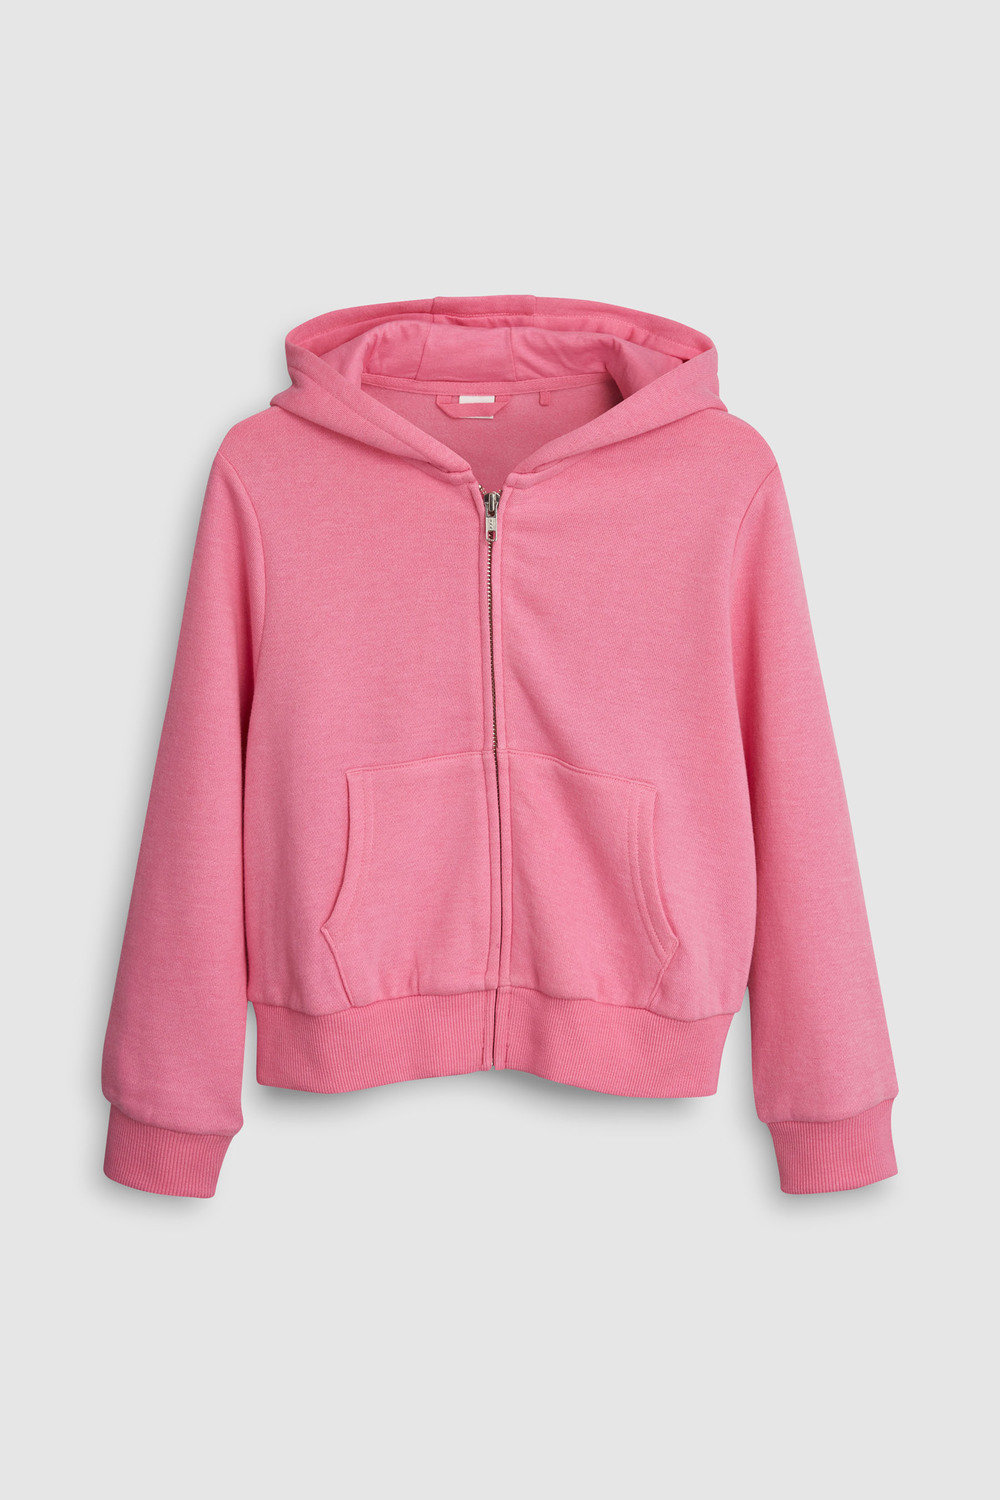 cc93deed9b1 Next Zip Through Hoody (3-16yrs) Online